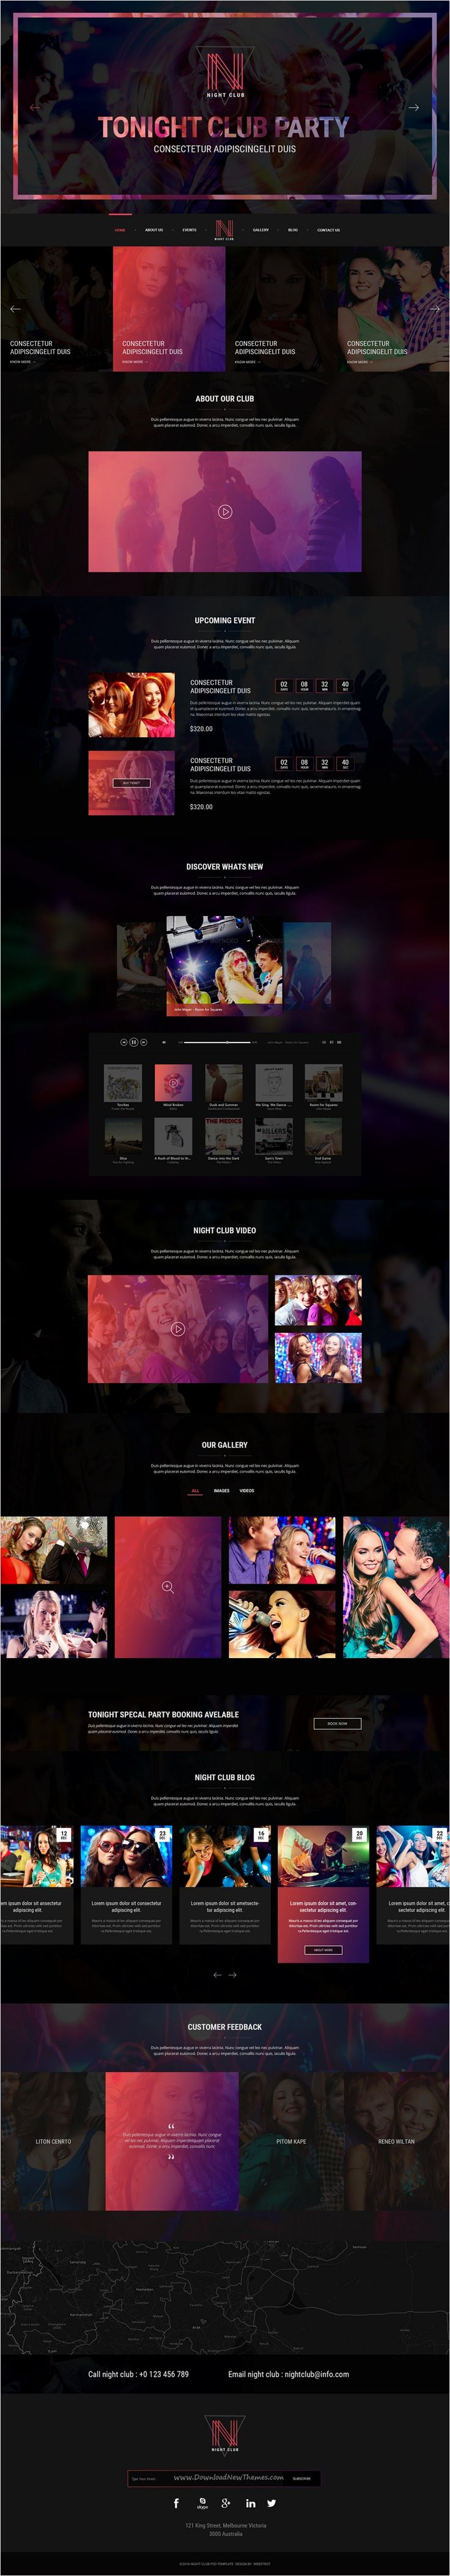 Night Club is awesome #PSD Template For Band, Pub, #Club, Dance, Digital Studio, #Adult Content, Music or Video Gallery website download now➩ https://themeforest.net/item/night-club-event-dj-party-music-club-psd-template/17387119?ref=Datasata